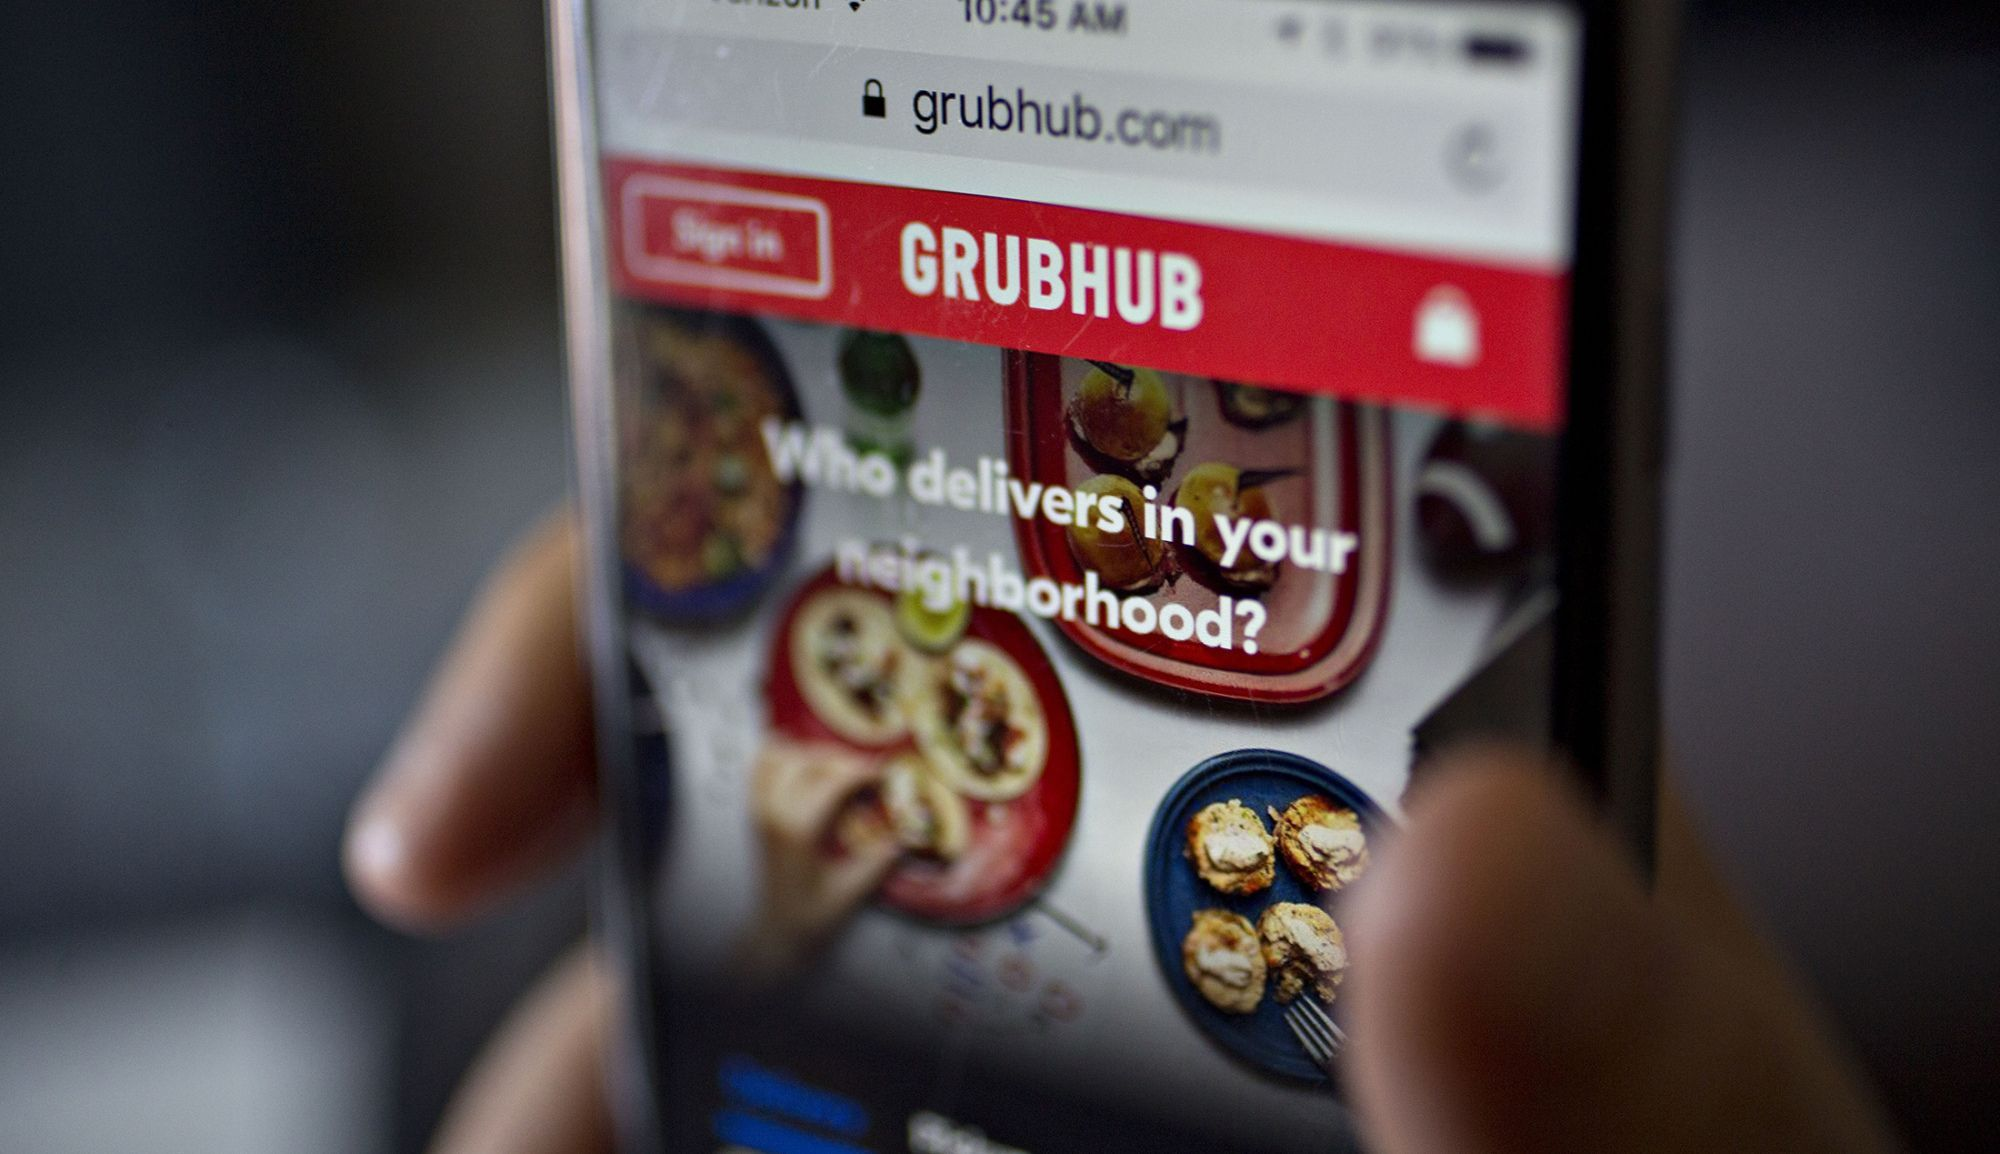 Just Eat Takeaway CEO Defends $7.3 Billion Grubhub Deal